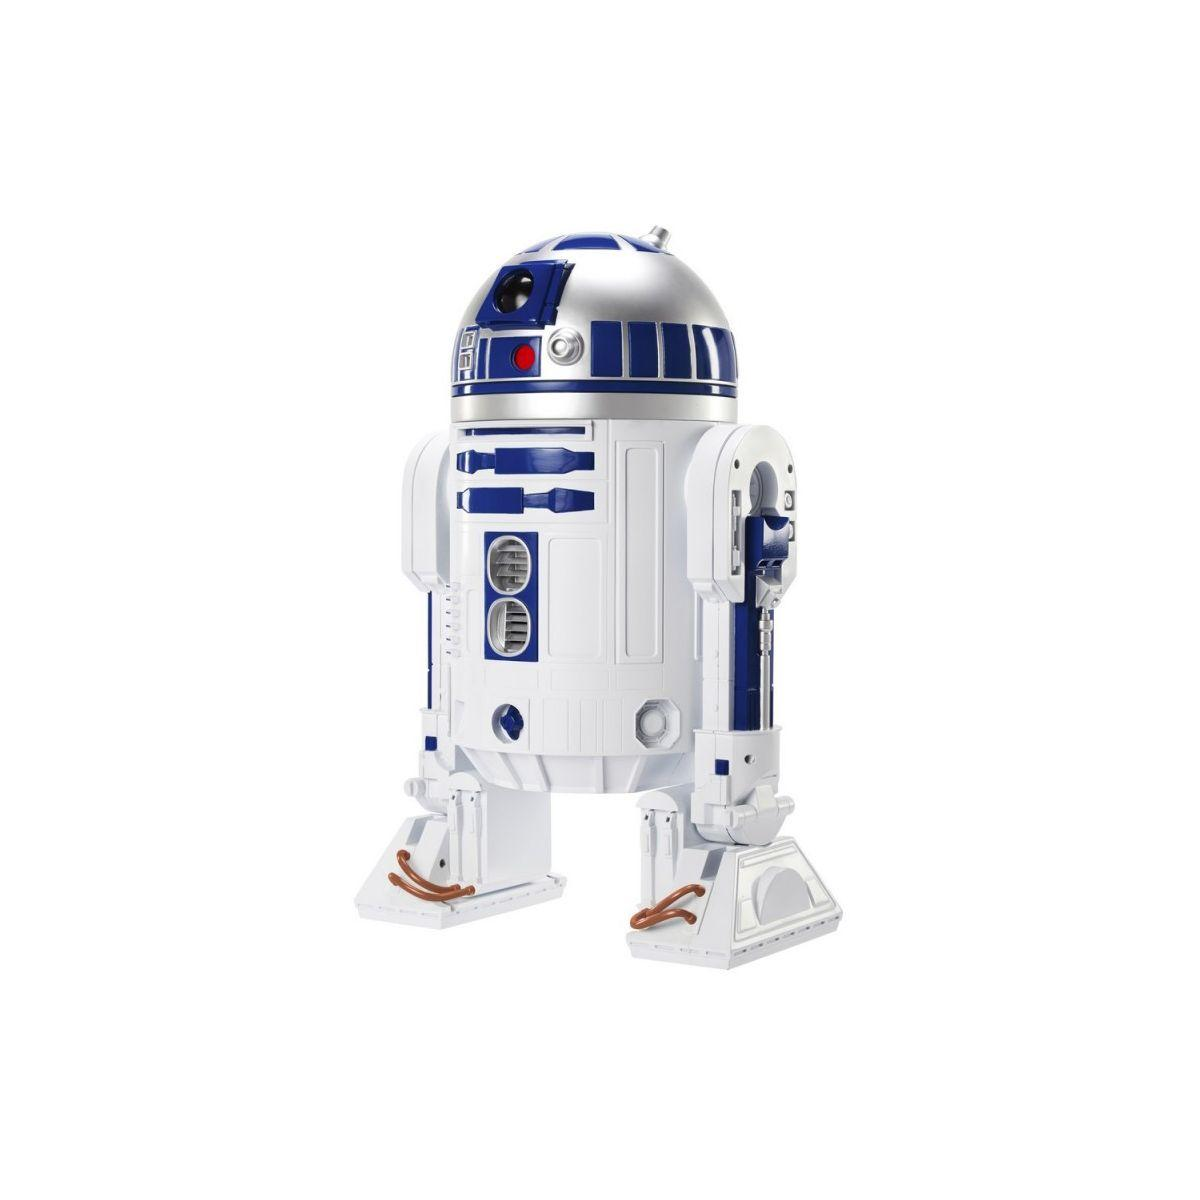 Figurine polymark r2-d2 50cm �lectronique (photo)